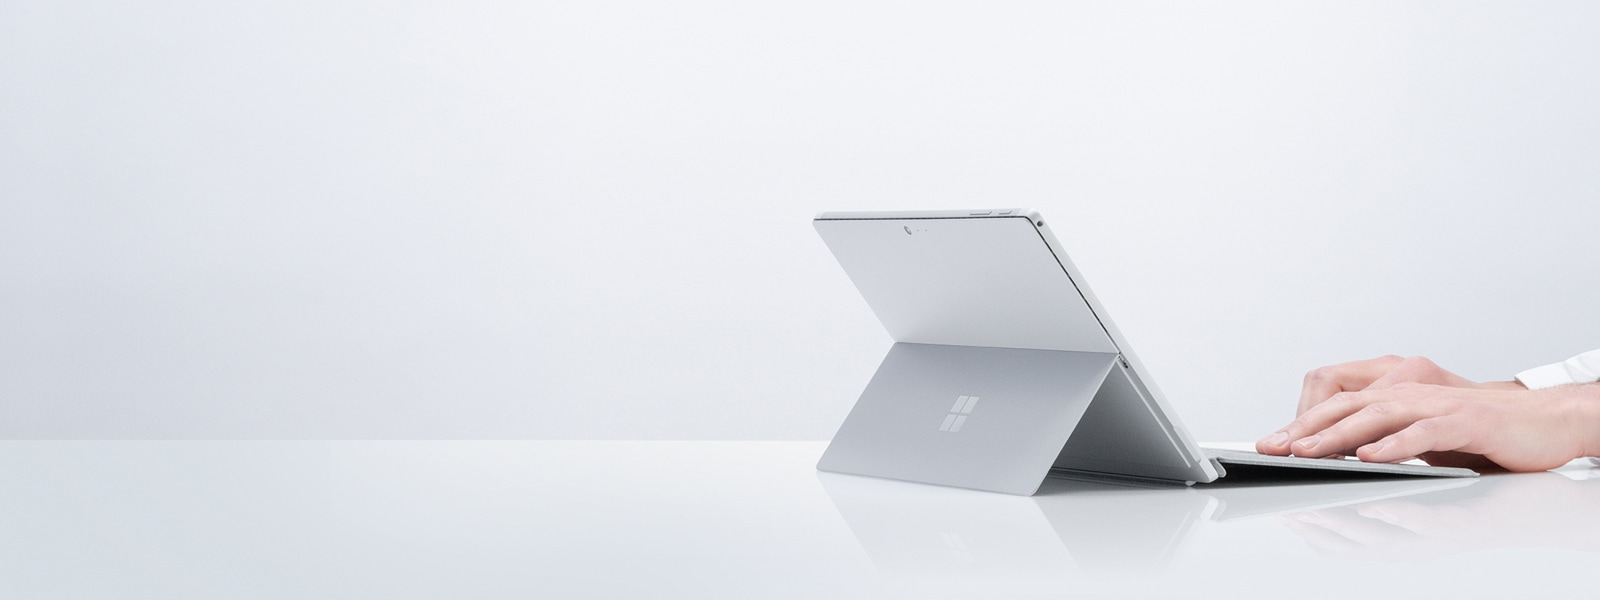 Someone types on a Surface Pro 6 with Type Cover